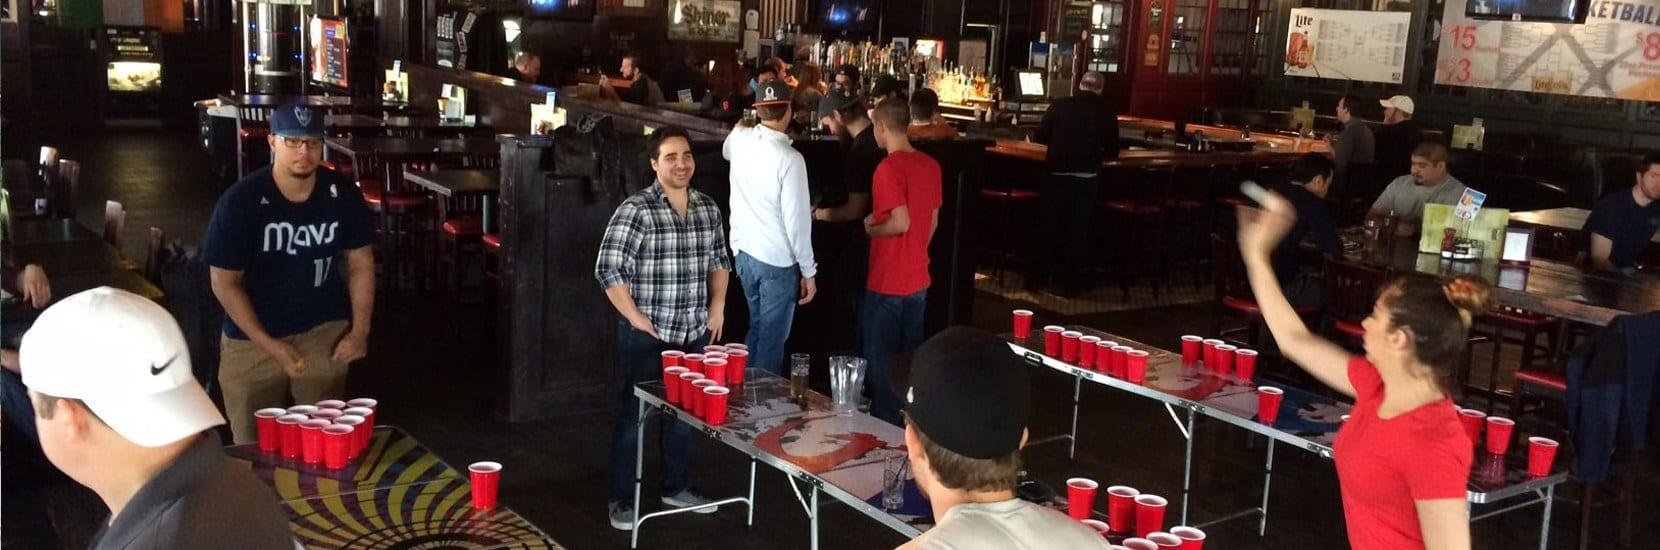 pong madness beer pong tournament